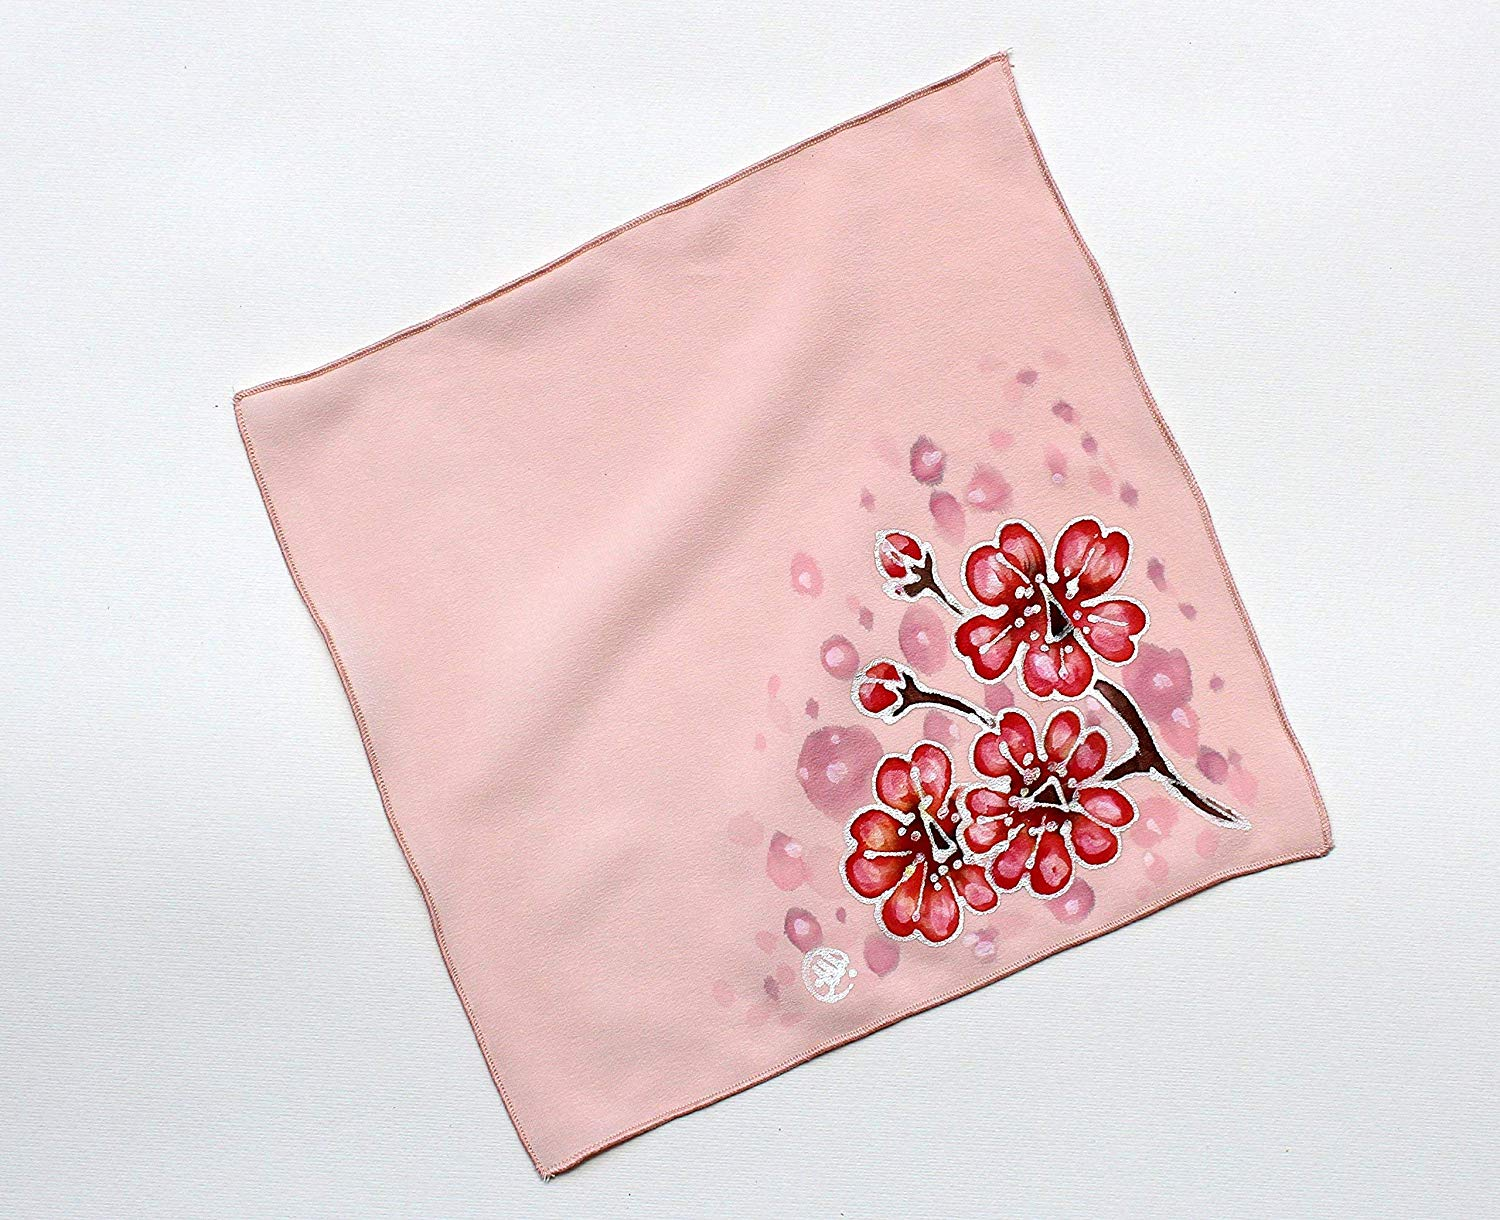 SALE!!!15% OFF/Cherry Blossom Silk Pocket Square Women/Hand Painted Silk Pocket Square/Great as a pocket square or Silk/Handkerchief for Men or Women/Handkerchief/Womens silk hankie,size 9.84/9.84 in.